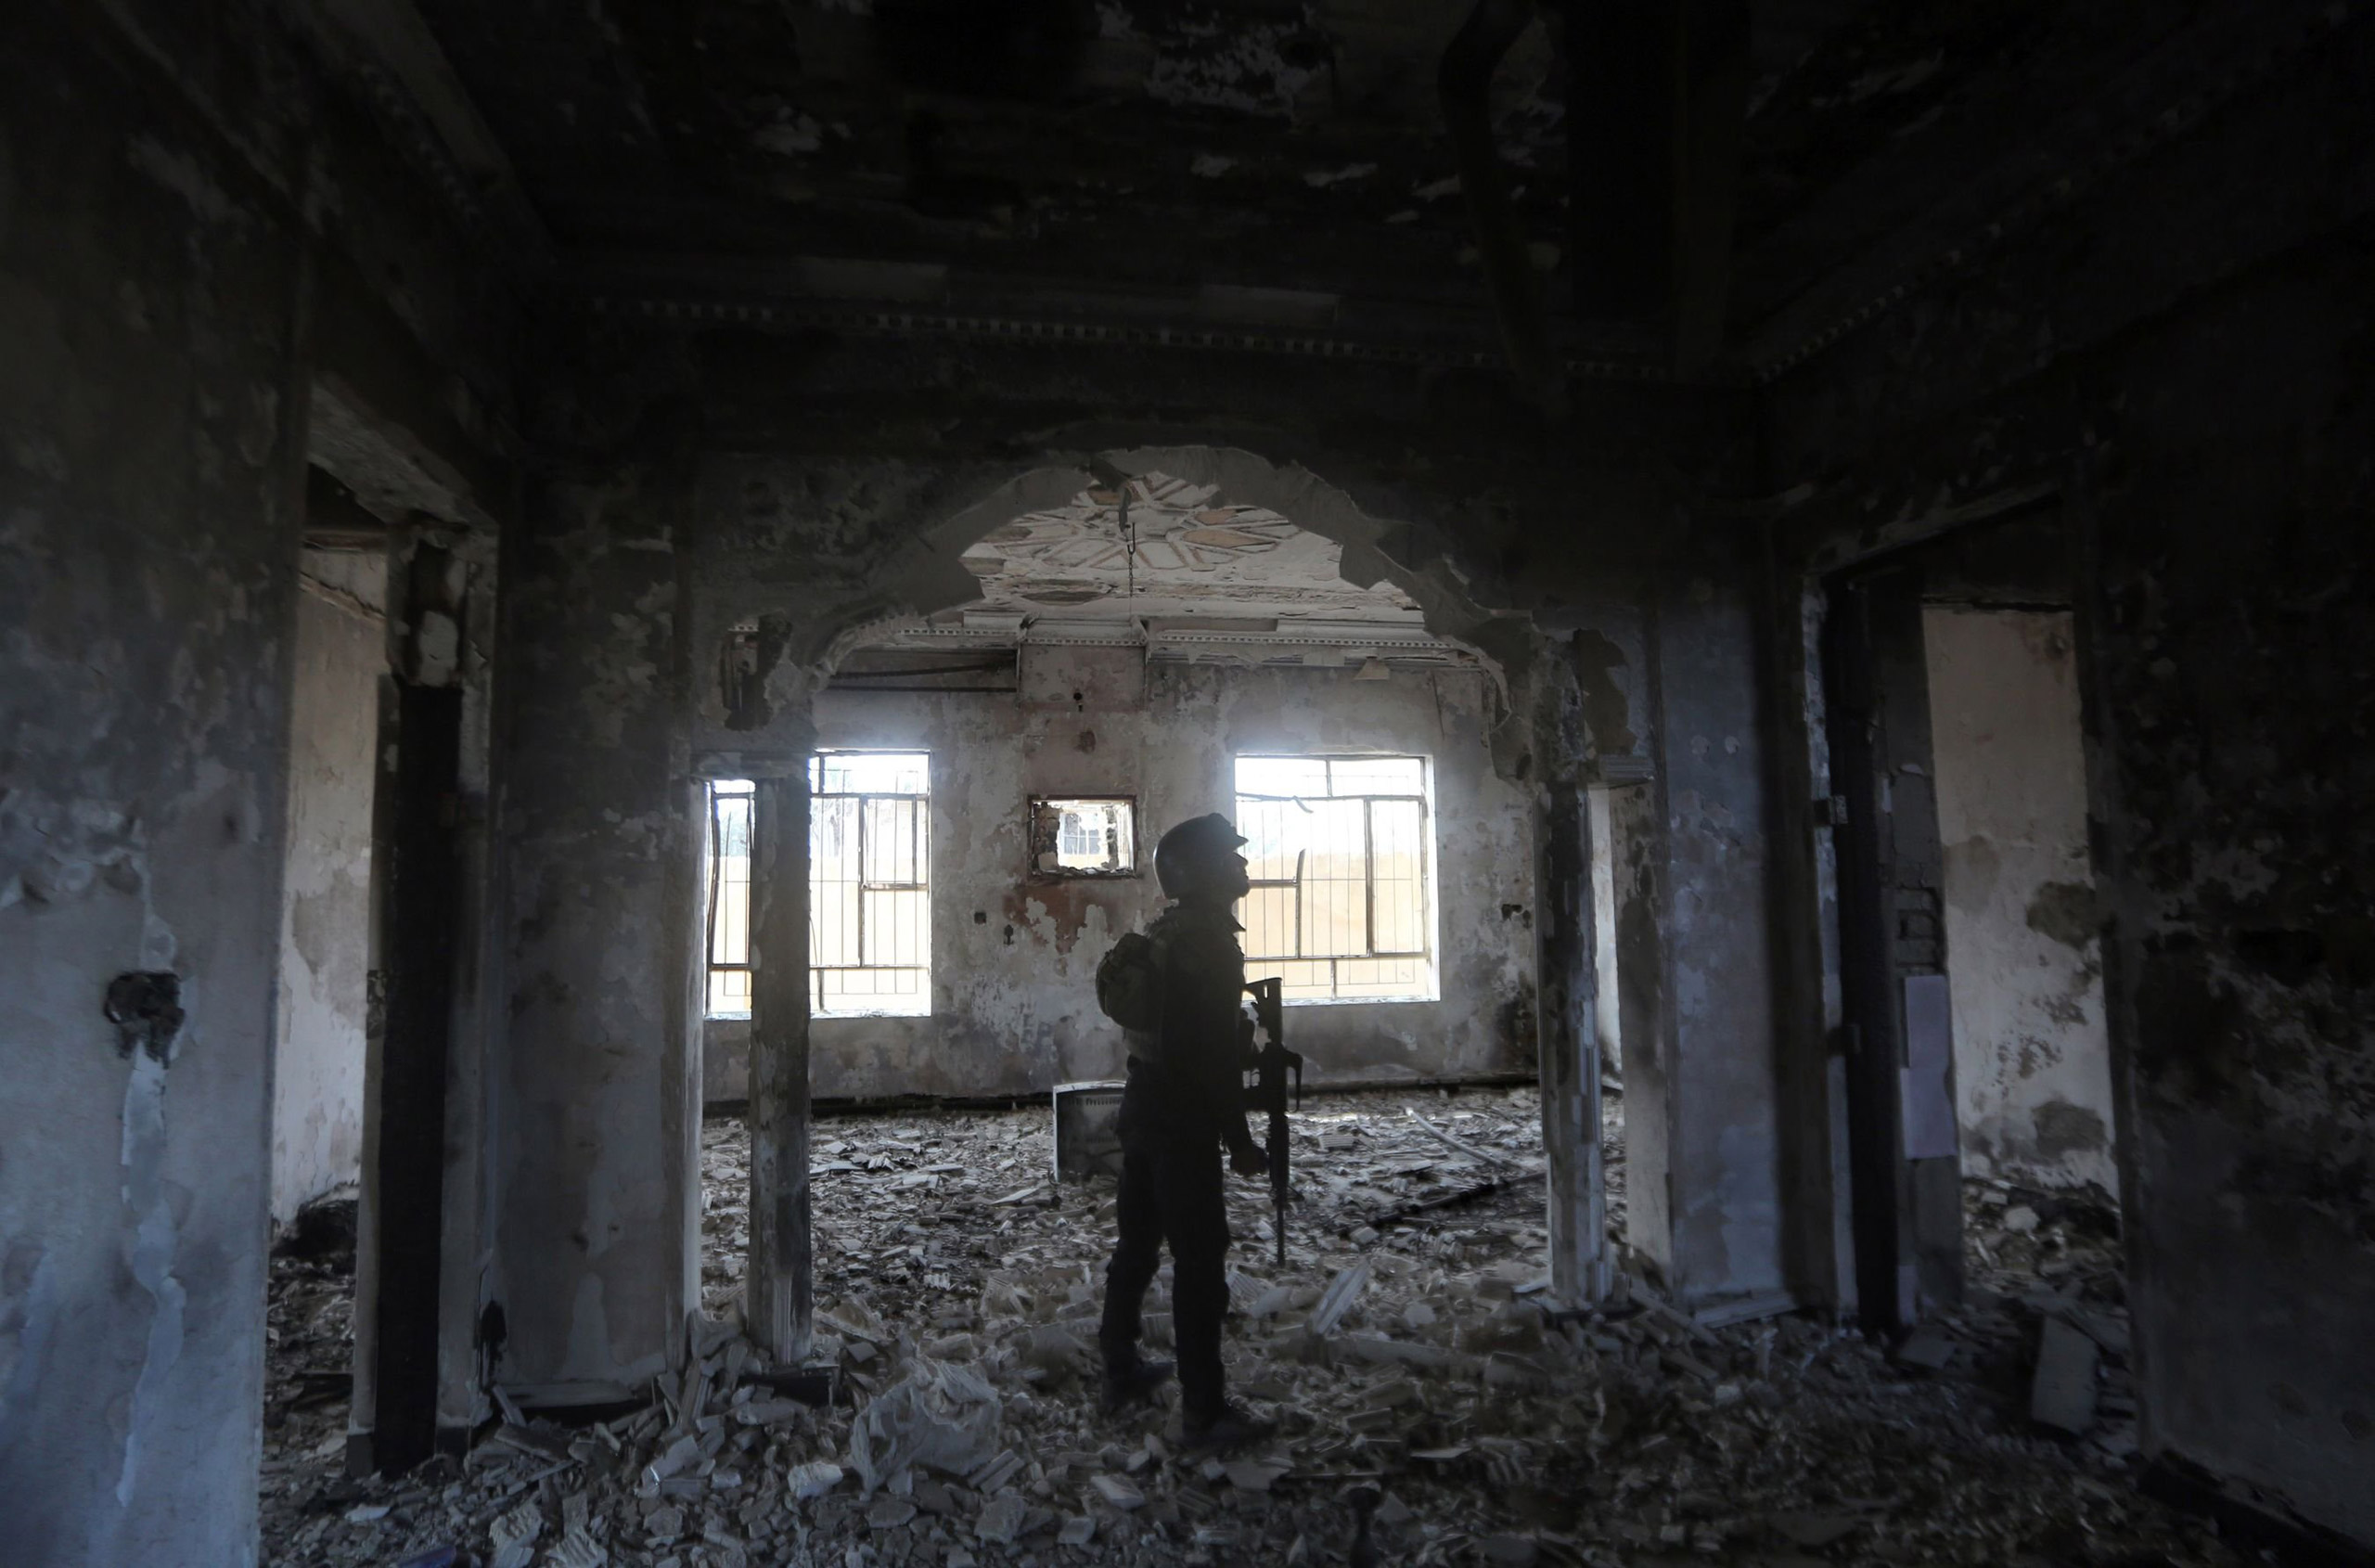 Members of Iraq's elite counter-terrorism service search a heavily damaged building in Ramadi on Dec. 27, 2015.